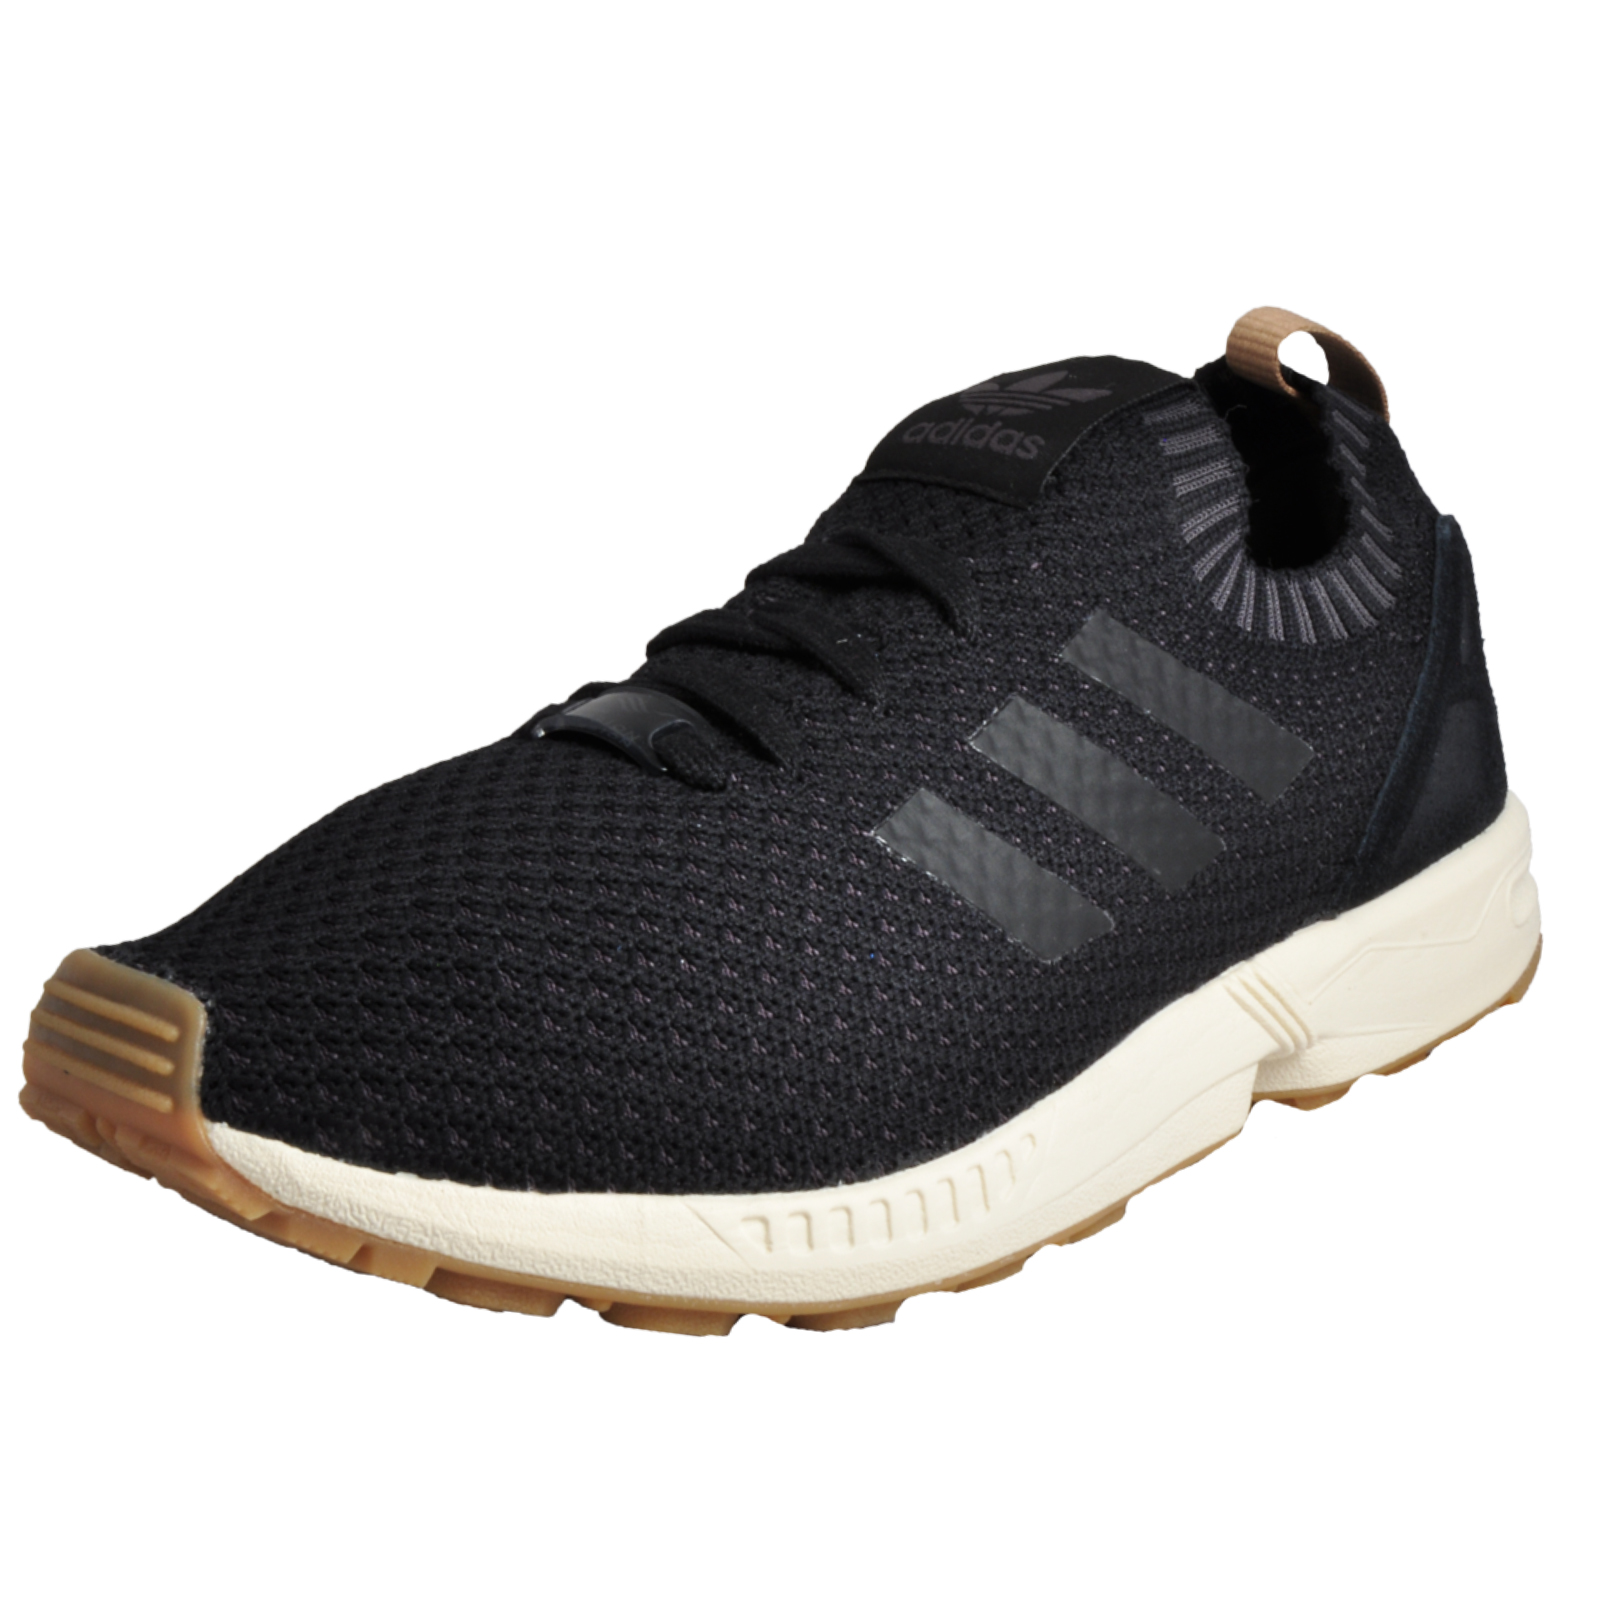 51f382650 ... discount code for adidas originals zx flux primeknit mens casual gym  trainers black 01310 d3043